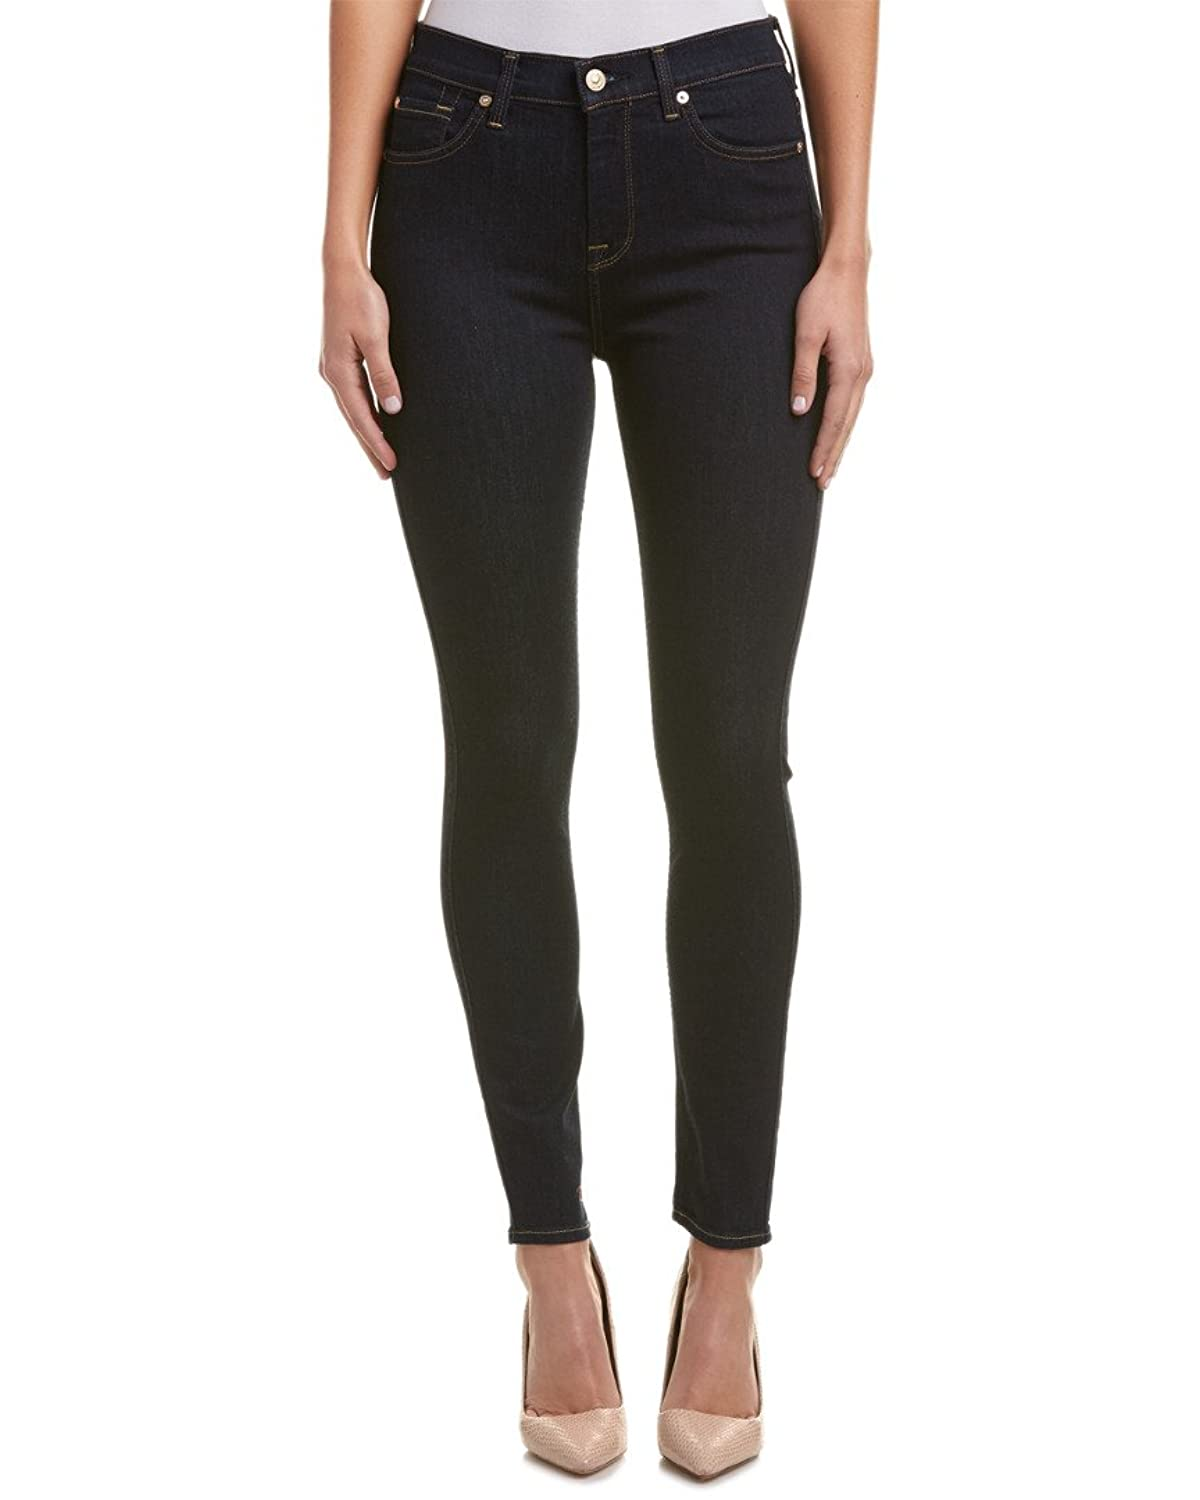 Seven For All Mankind Womens 7 For All Mankind The High-Waist Dark Onyx Sky Ankle Cut, 26, Blue